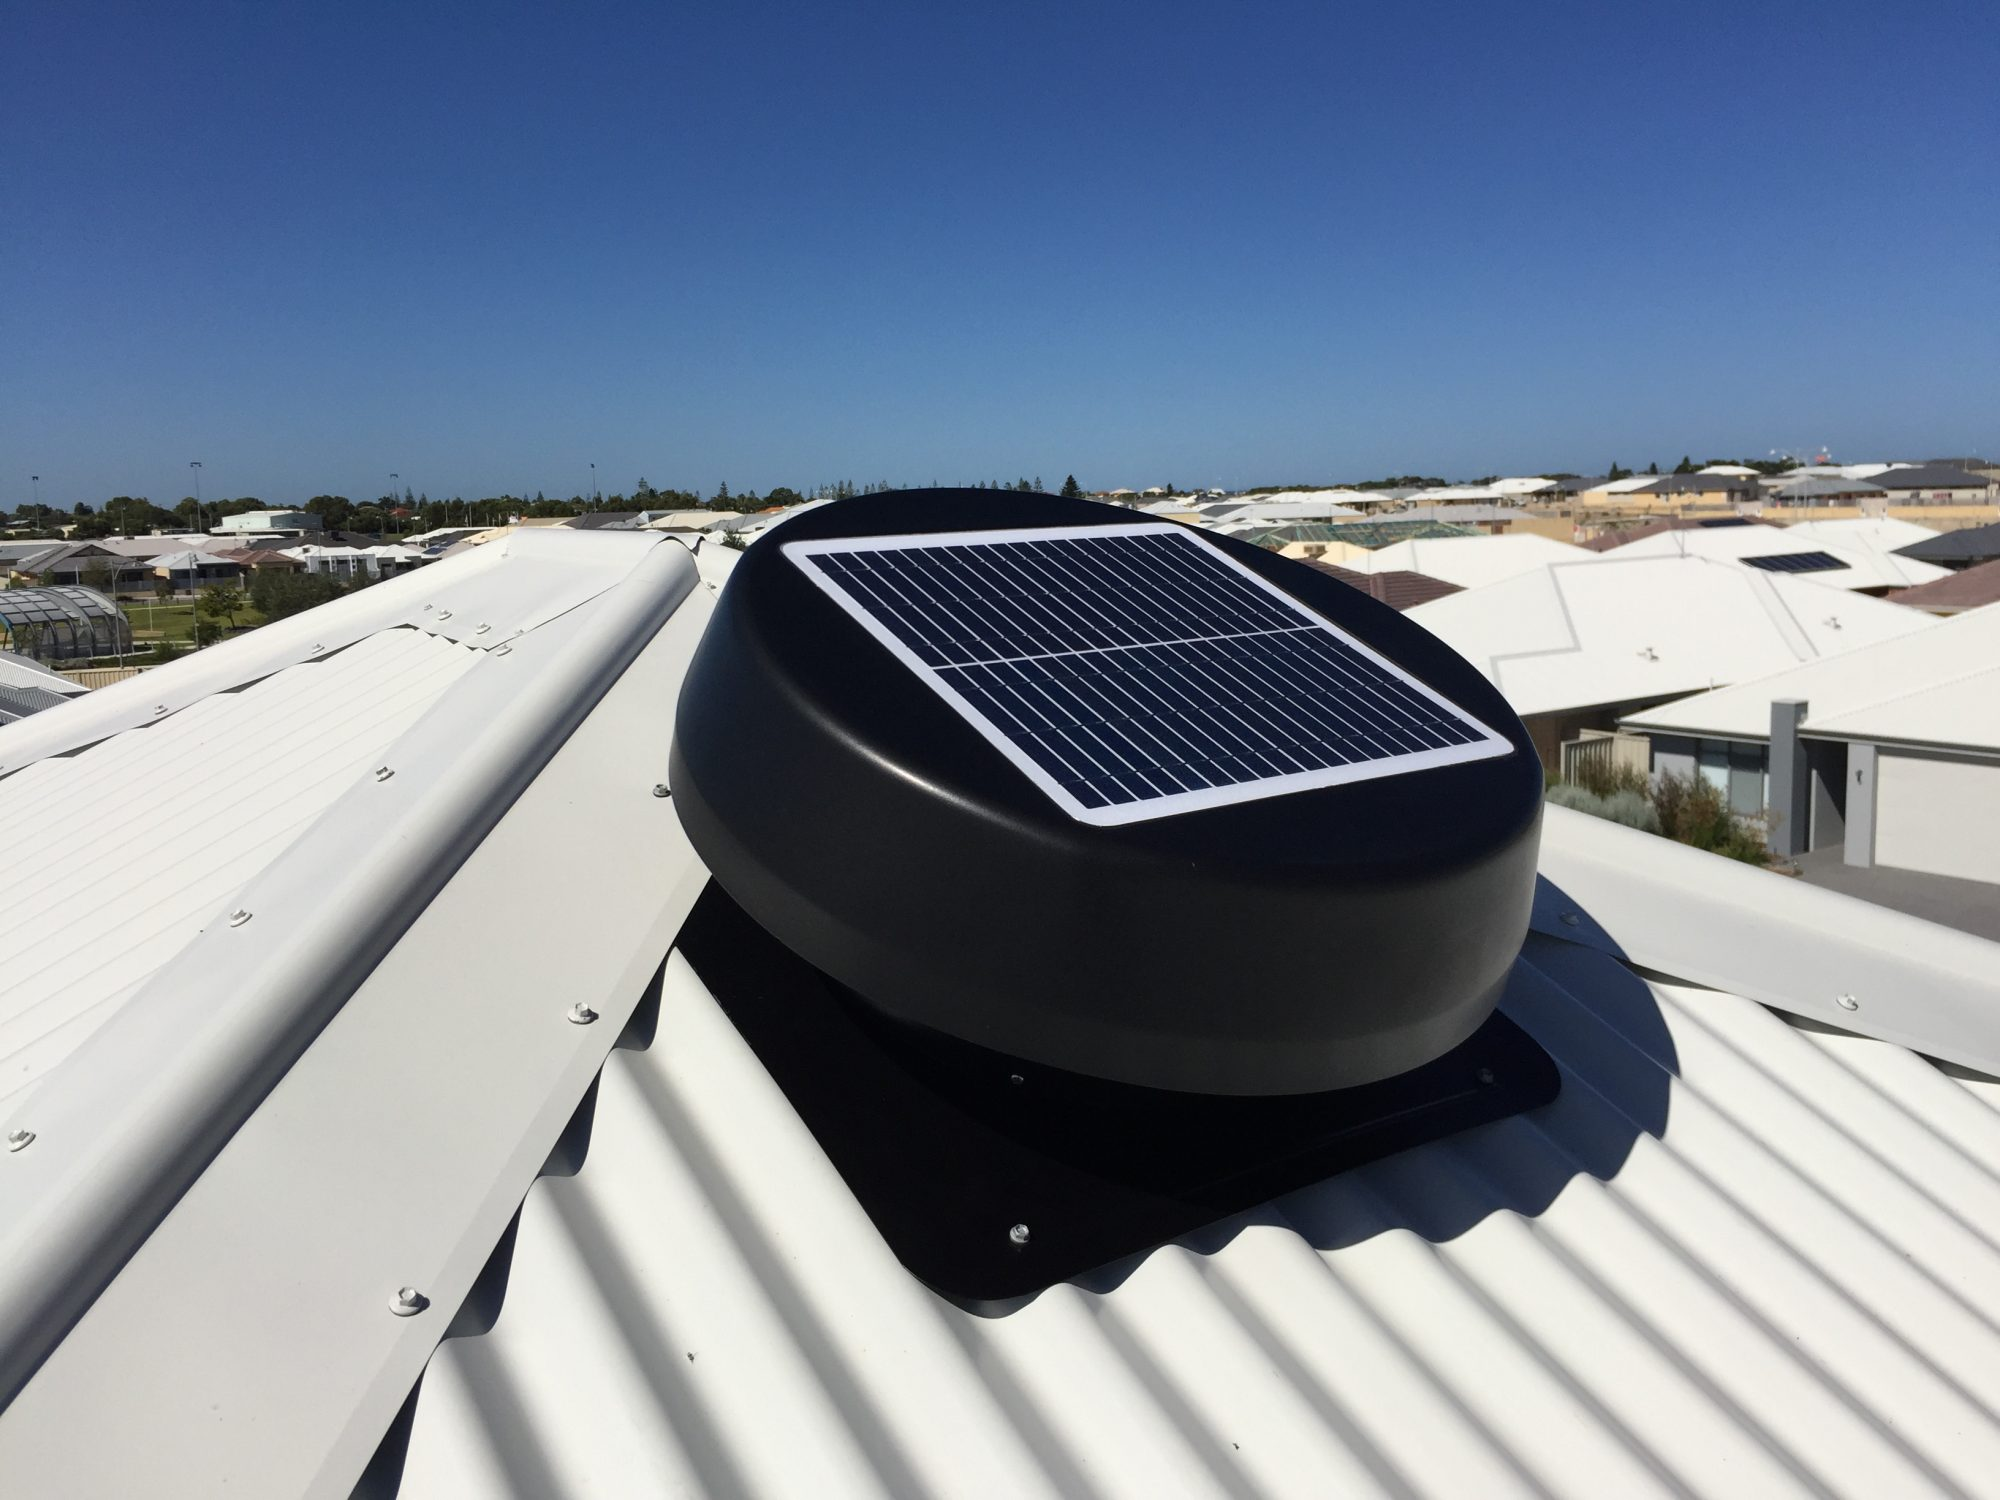 Roofing Vents Whirlybirds Solar Powered Fans Solar